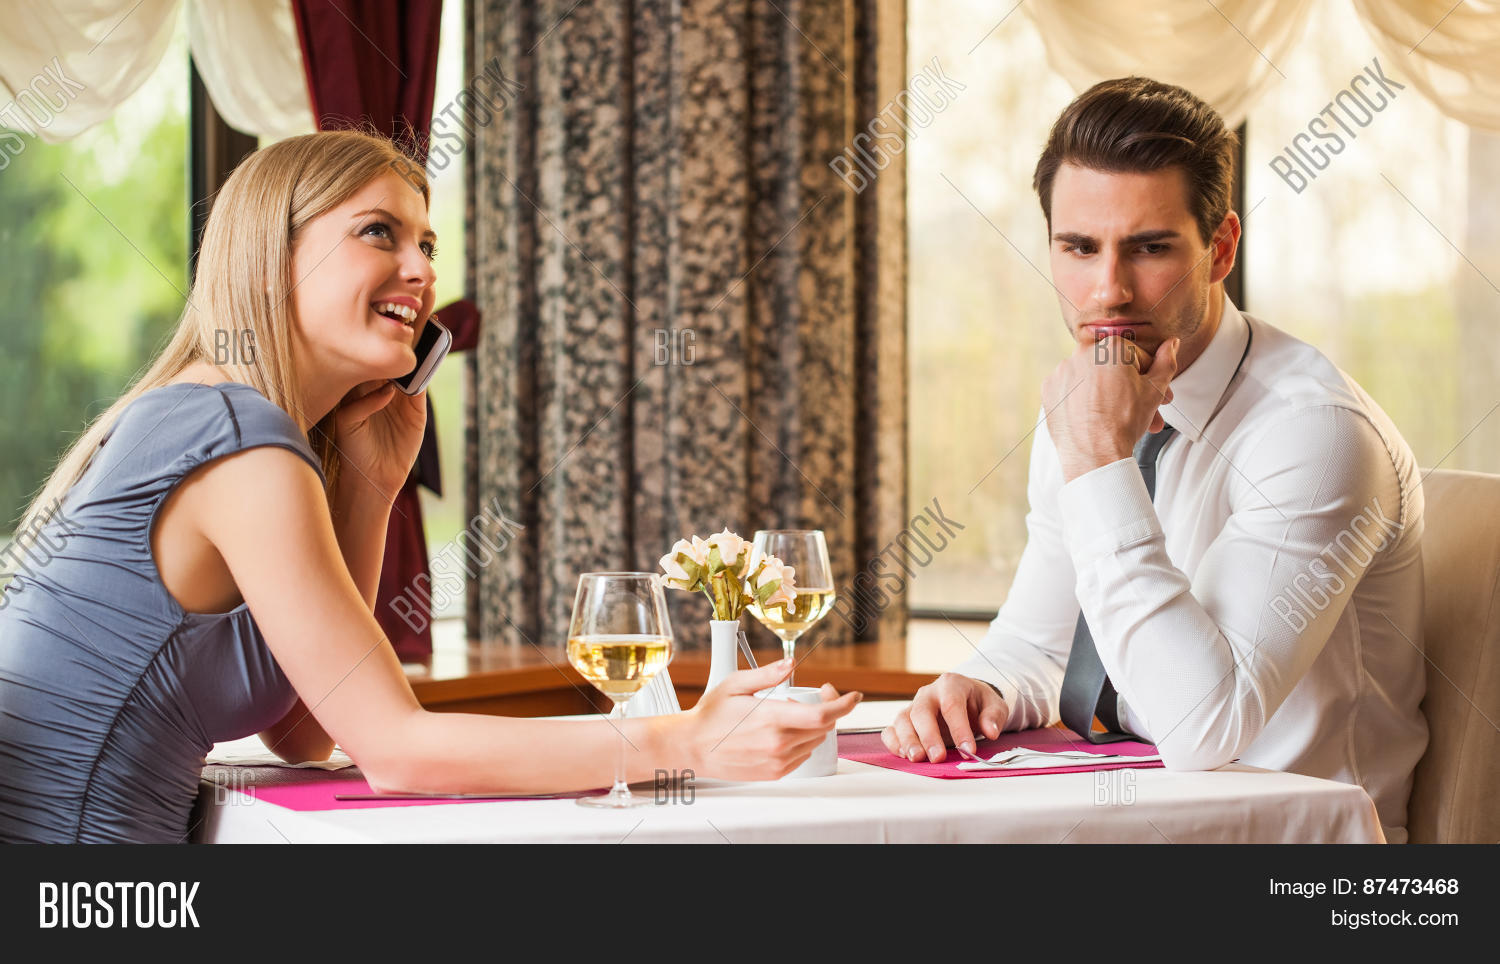 talking on the phone dating The ability to talk to a guy on the phone and knowing how to do it successfully is one of the most underestimated and understates skills in modern dating now you'll be able to master the art of.